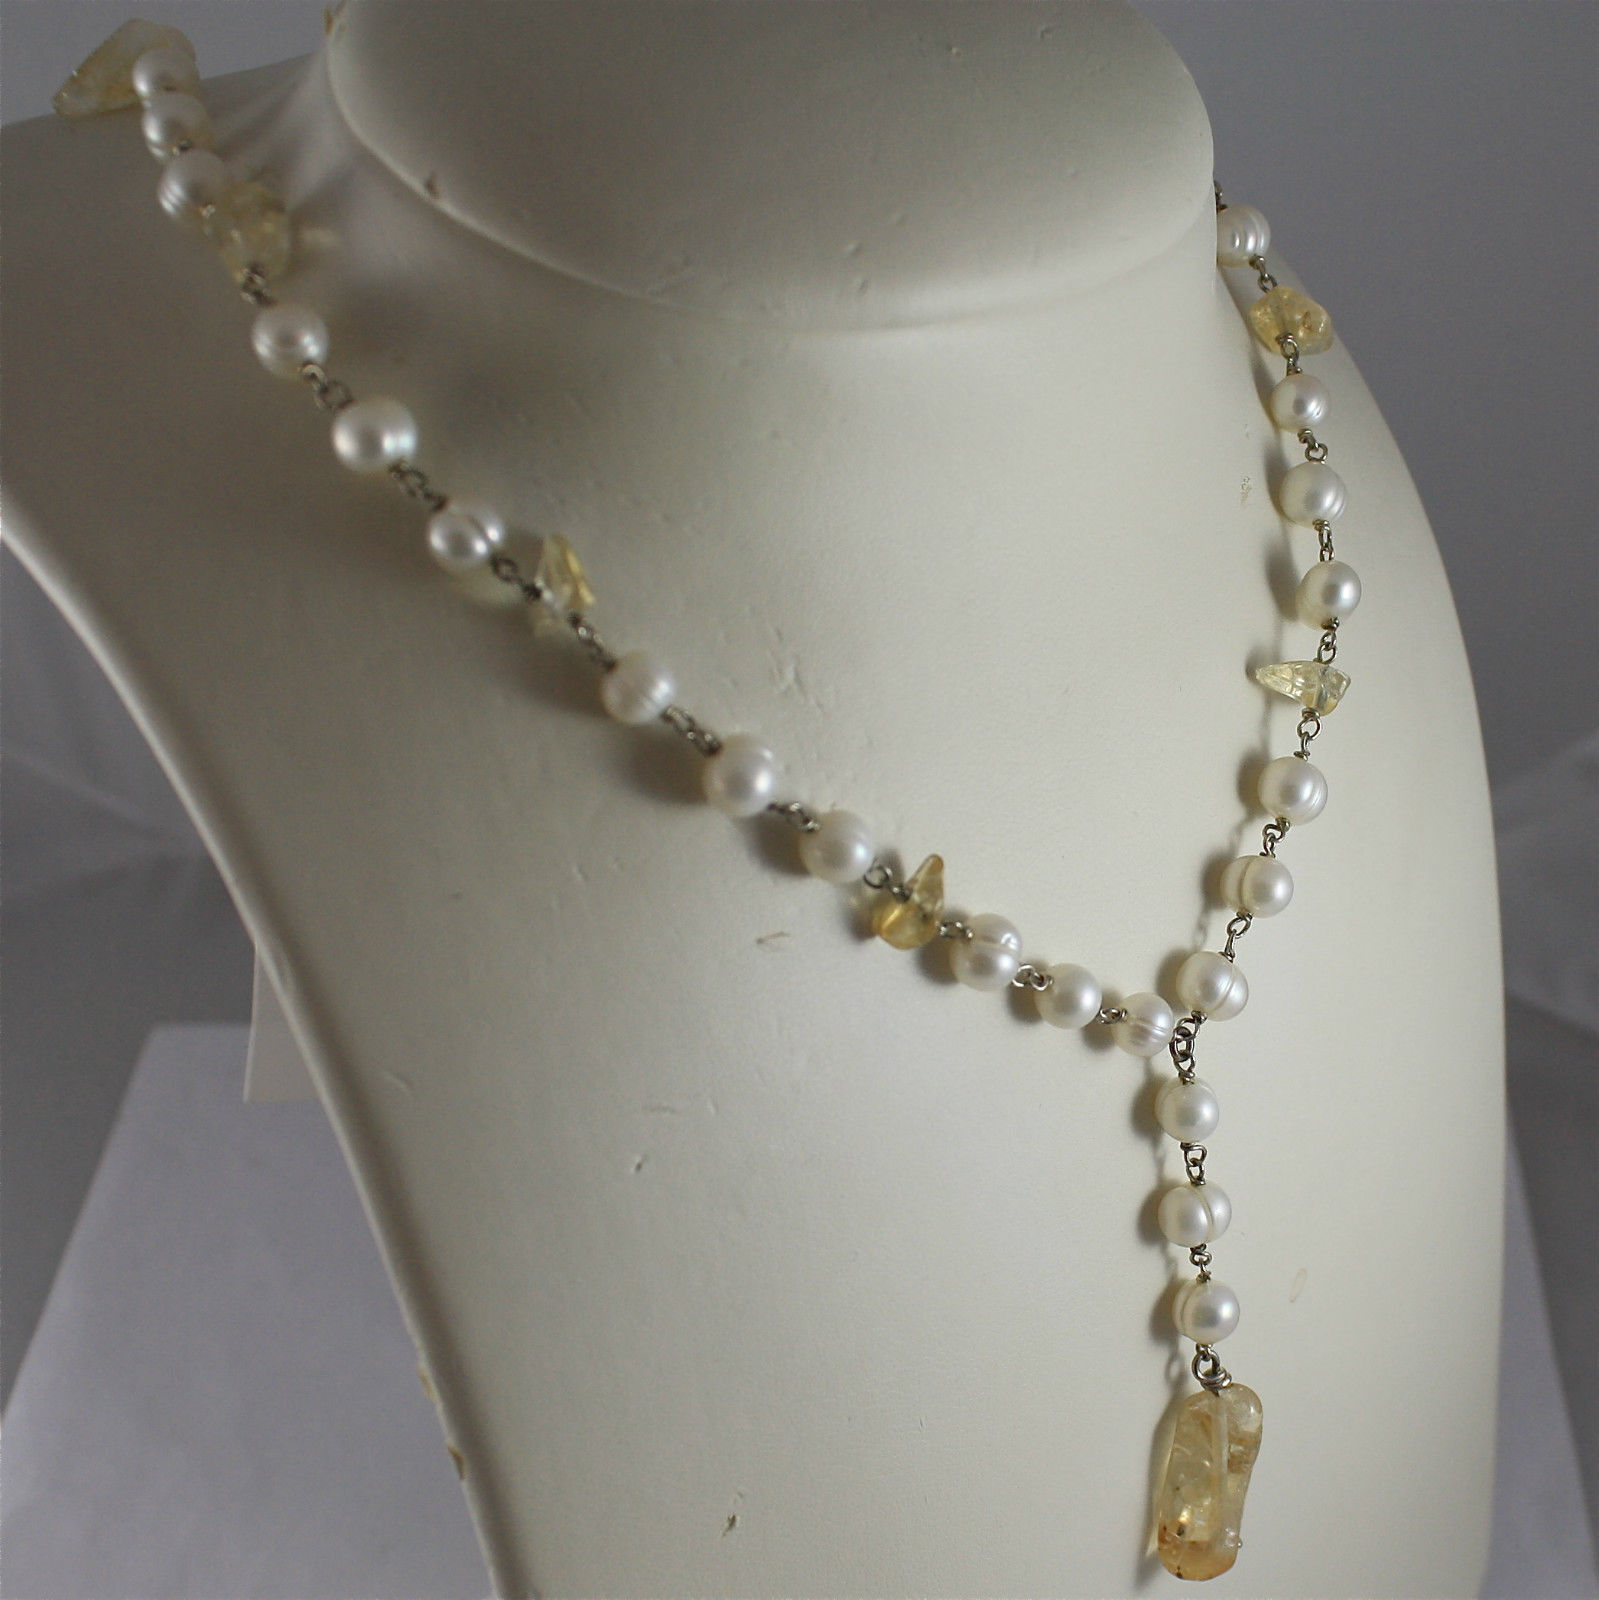 .925 RHODIUM SILVER NECKLACE, SCARF,WHITE BAROQUE PEARLS, YELLOW CRACK CRISTALS.